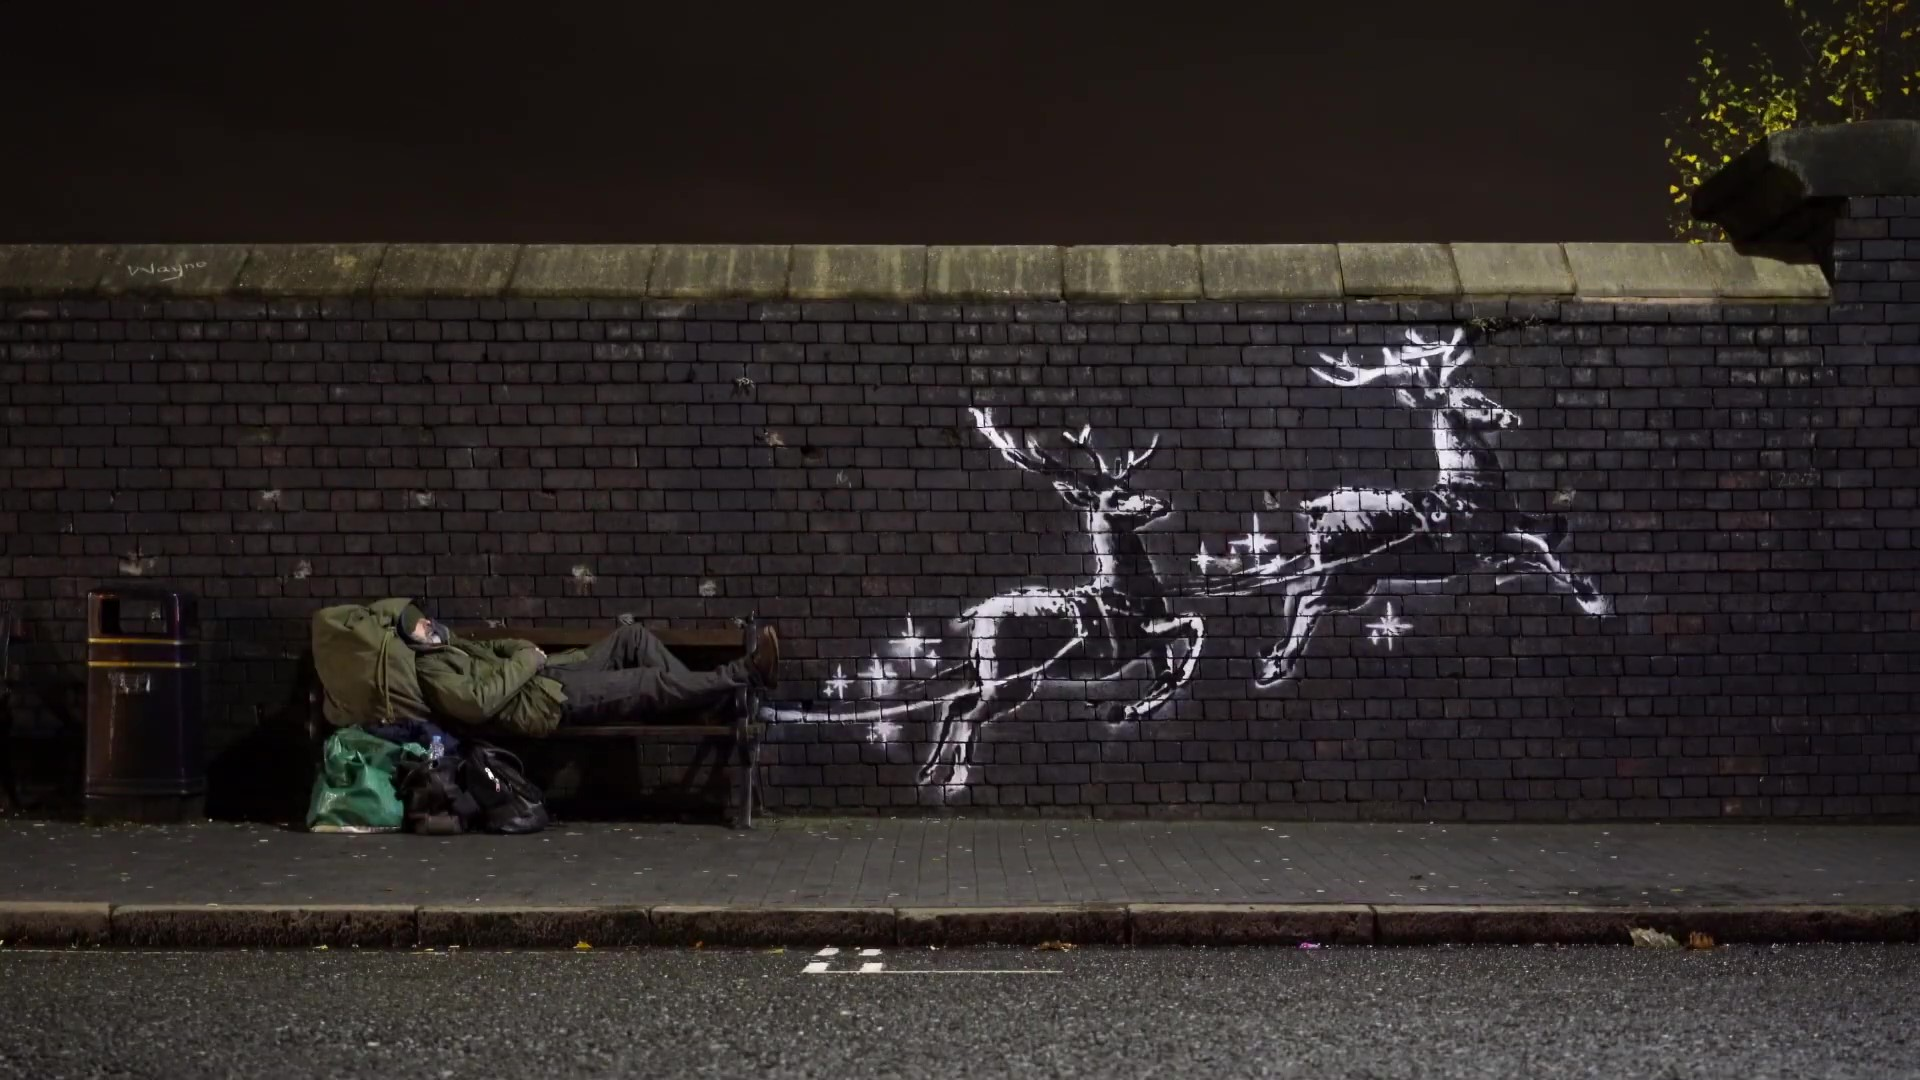 New Banksy highlight plight faced by homeless at Christmas - Street Art Utopia